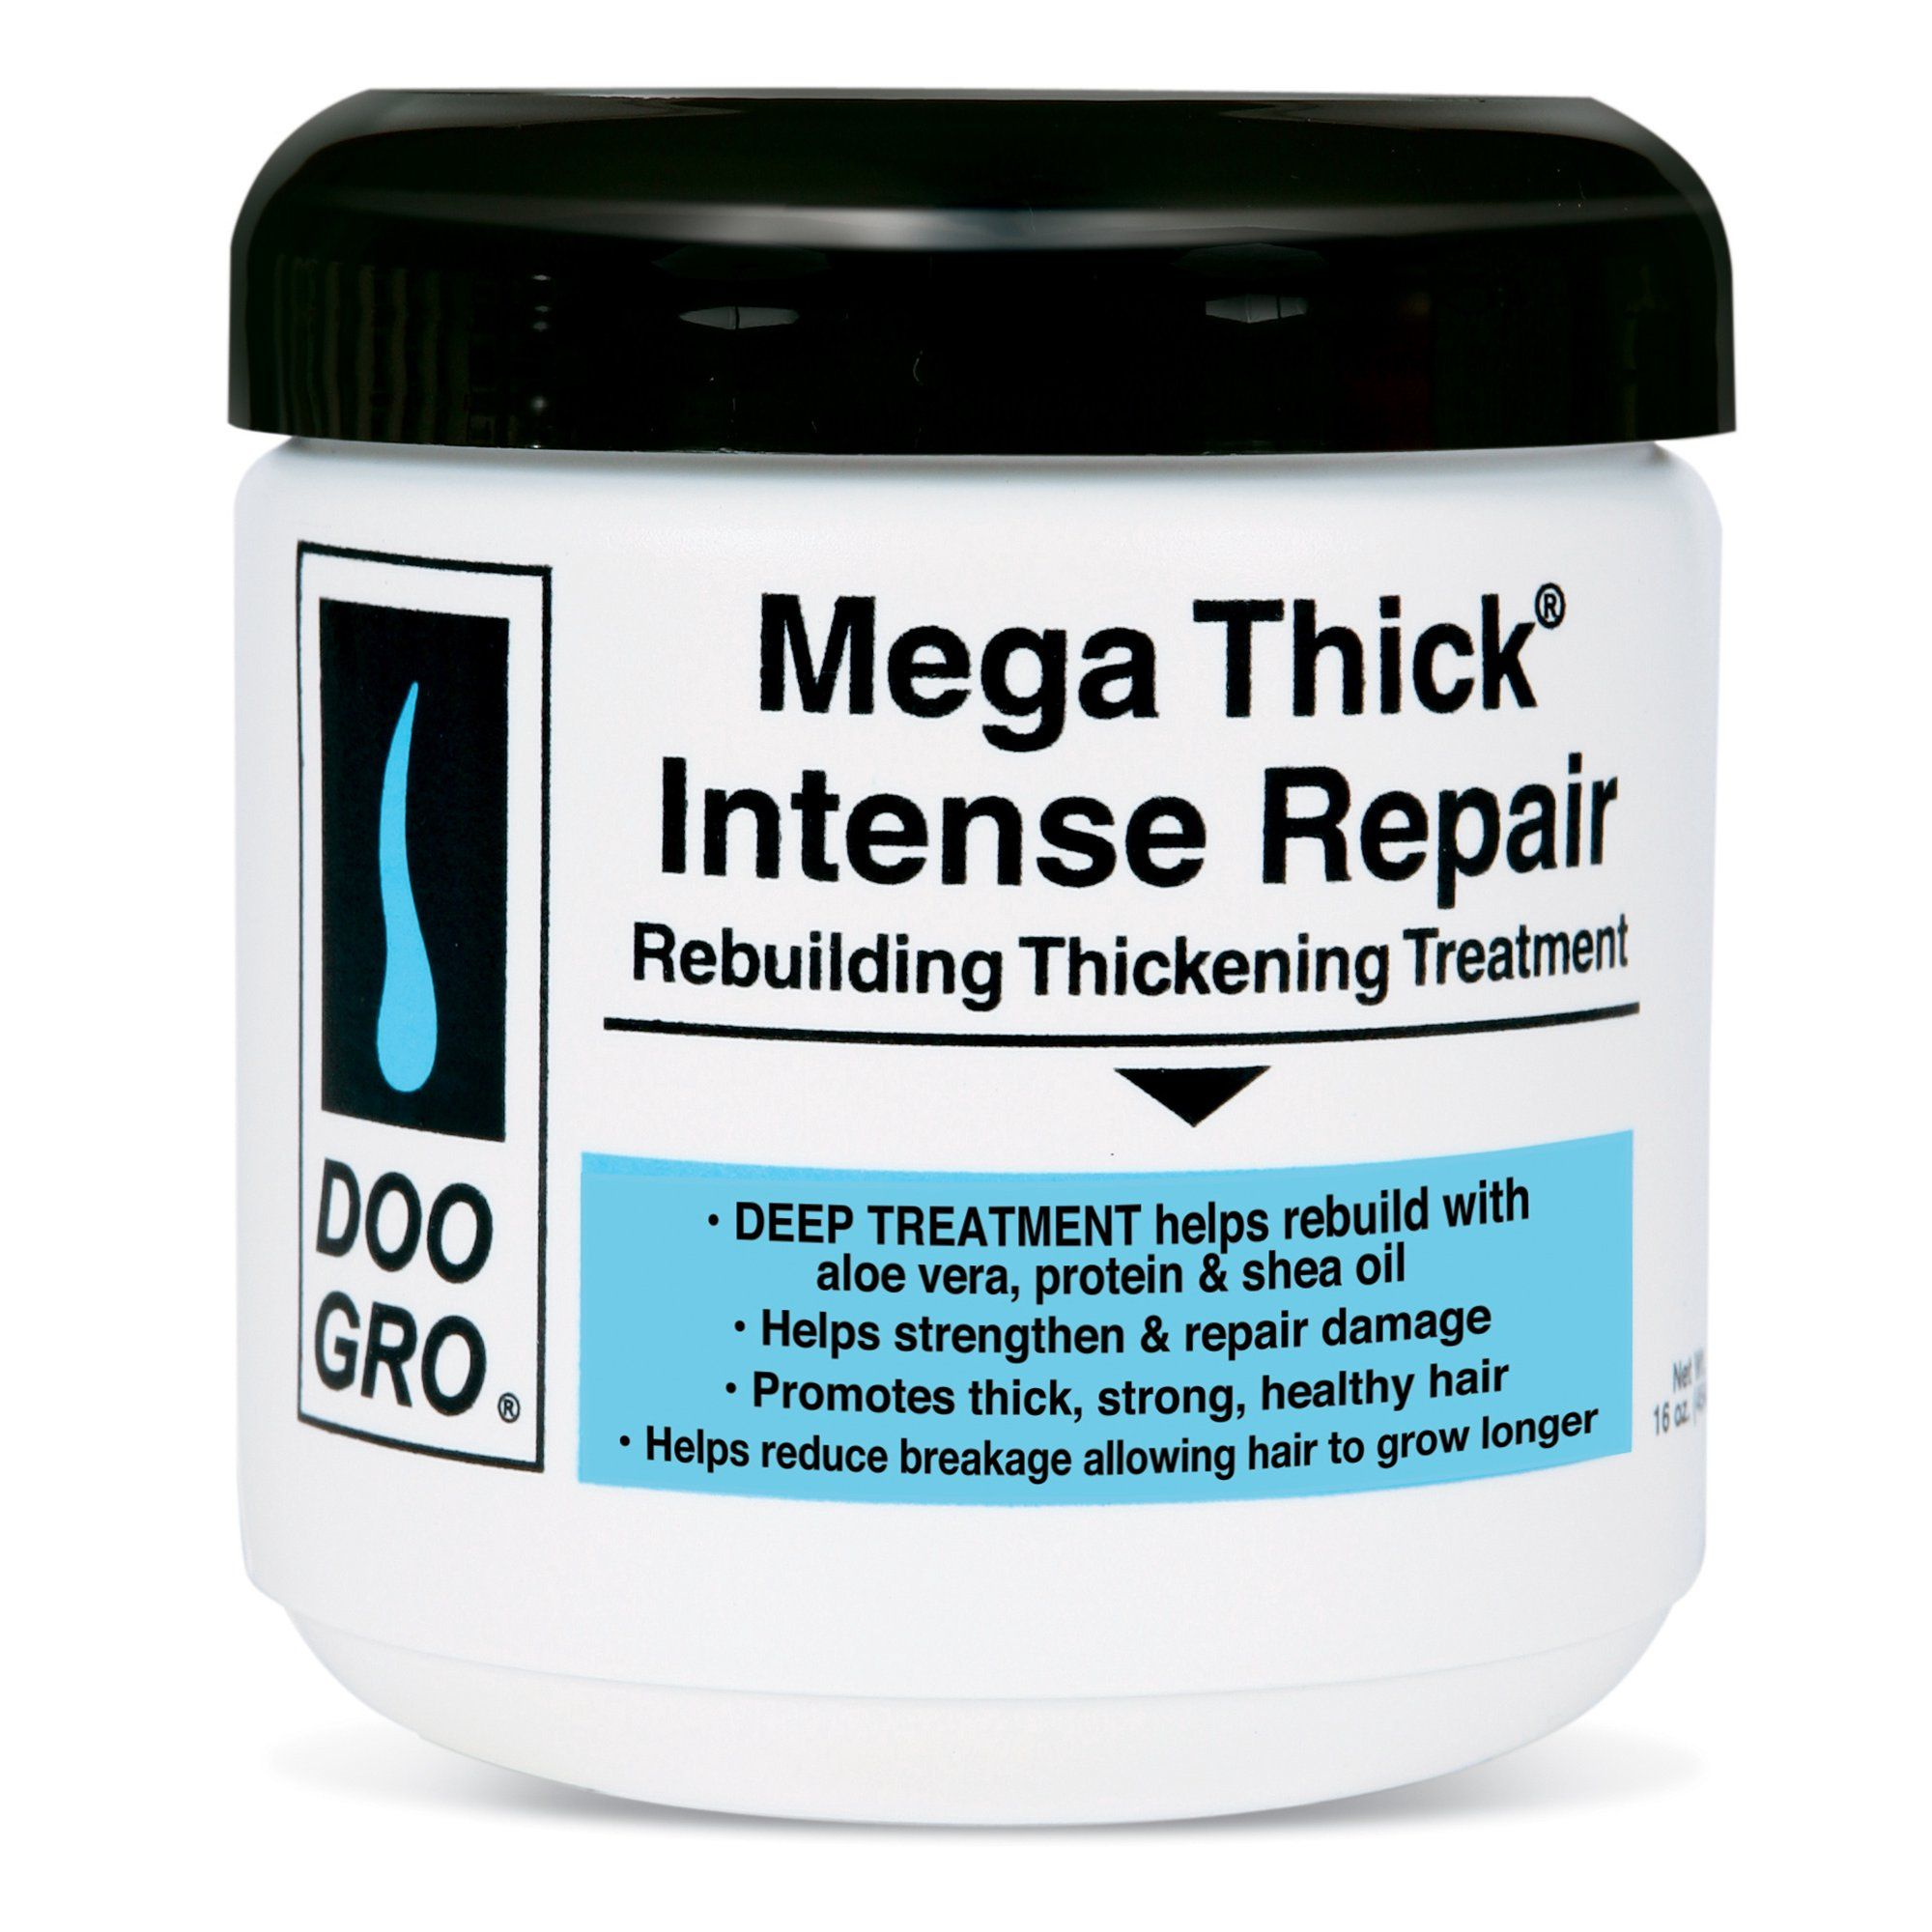 Doo Groa Mega Thicka Intense Repair Walmart Com In 2020 Wen Hair Products Wen Hair Care Hair Care Products Professional